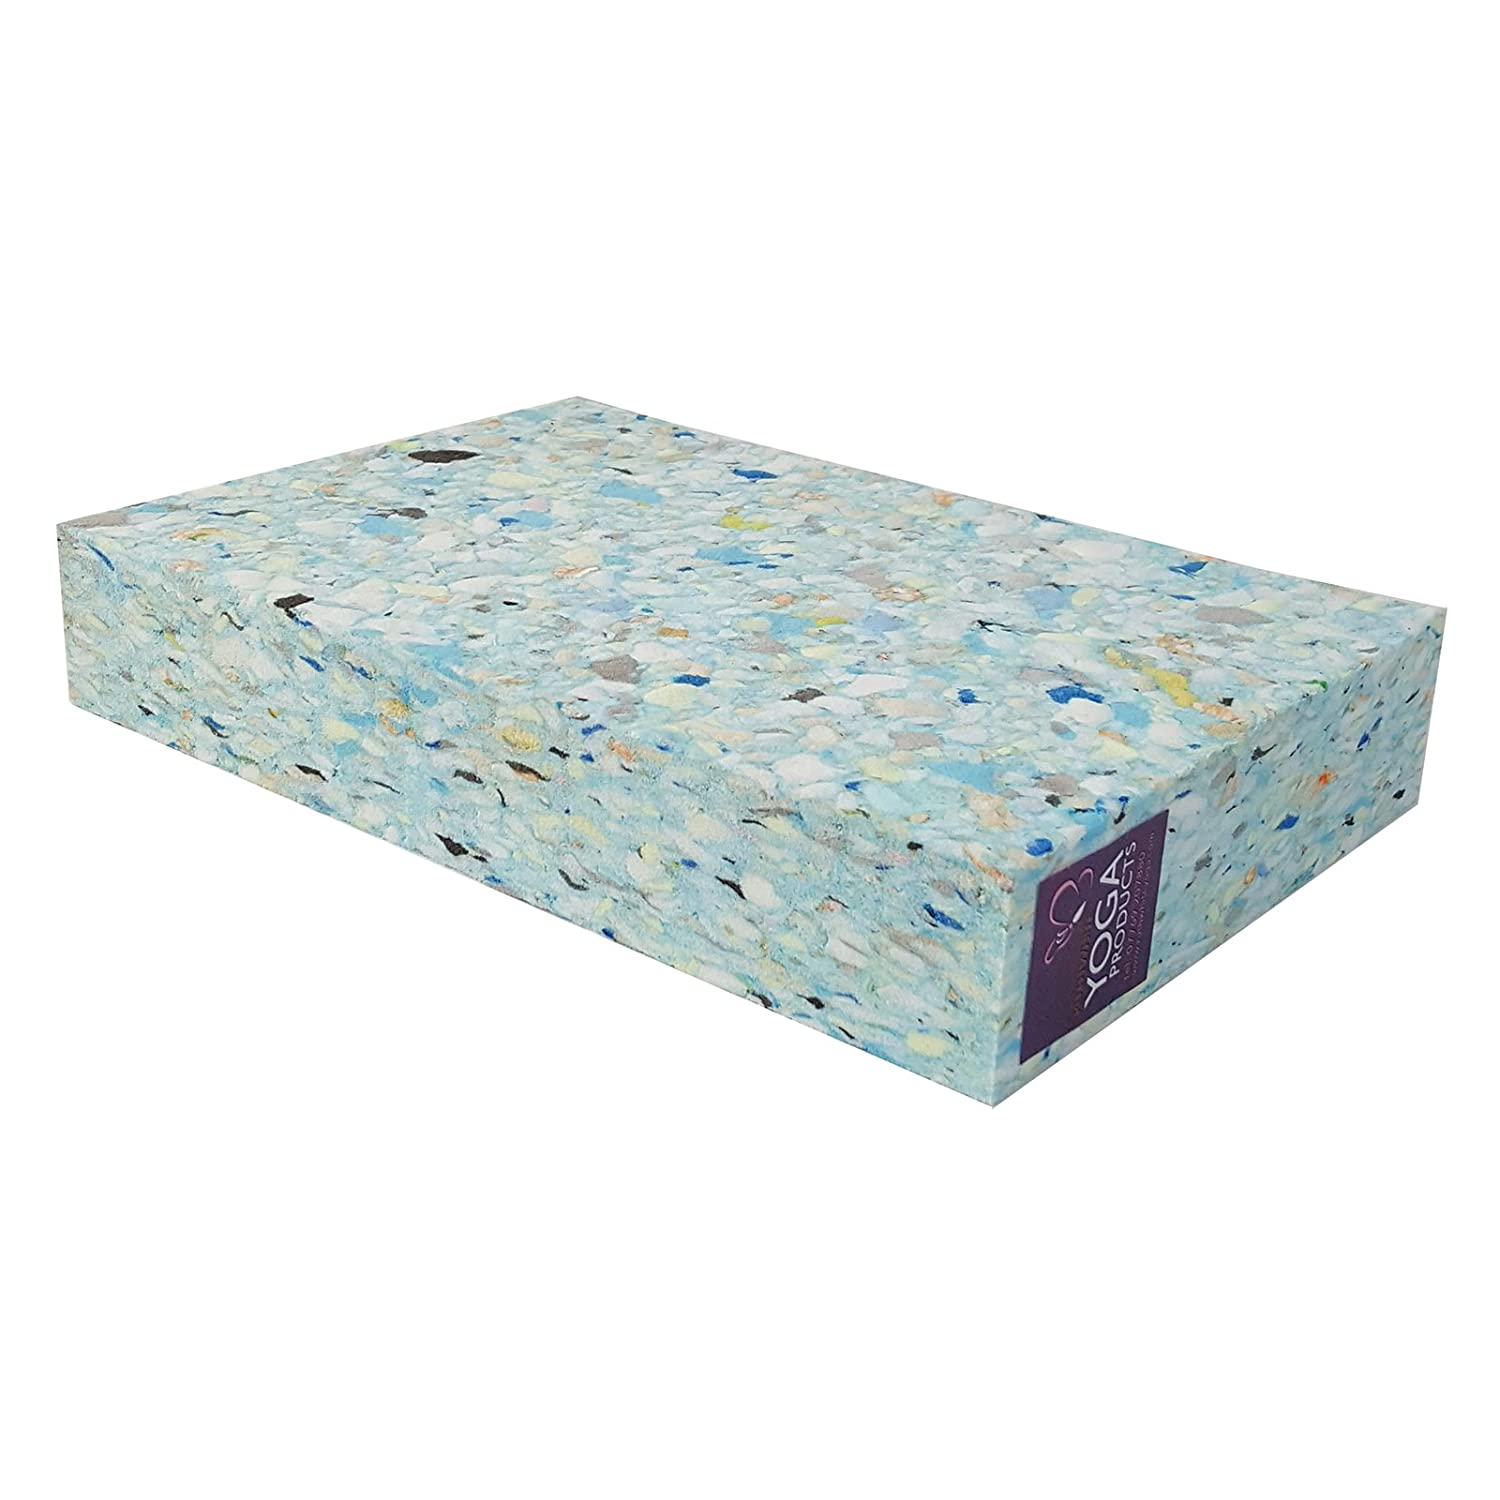 1 x Recycled Chip Foam FULL Yoga Block Ruth White Yoga Products Ltd